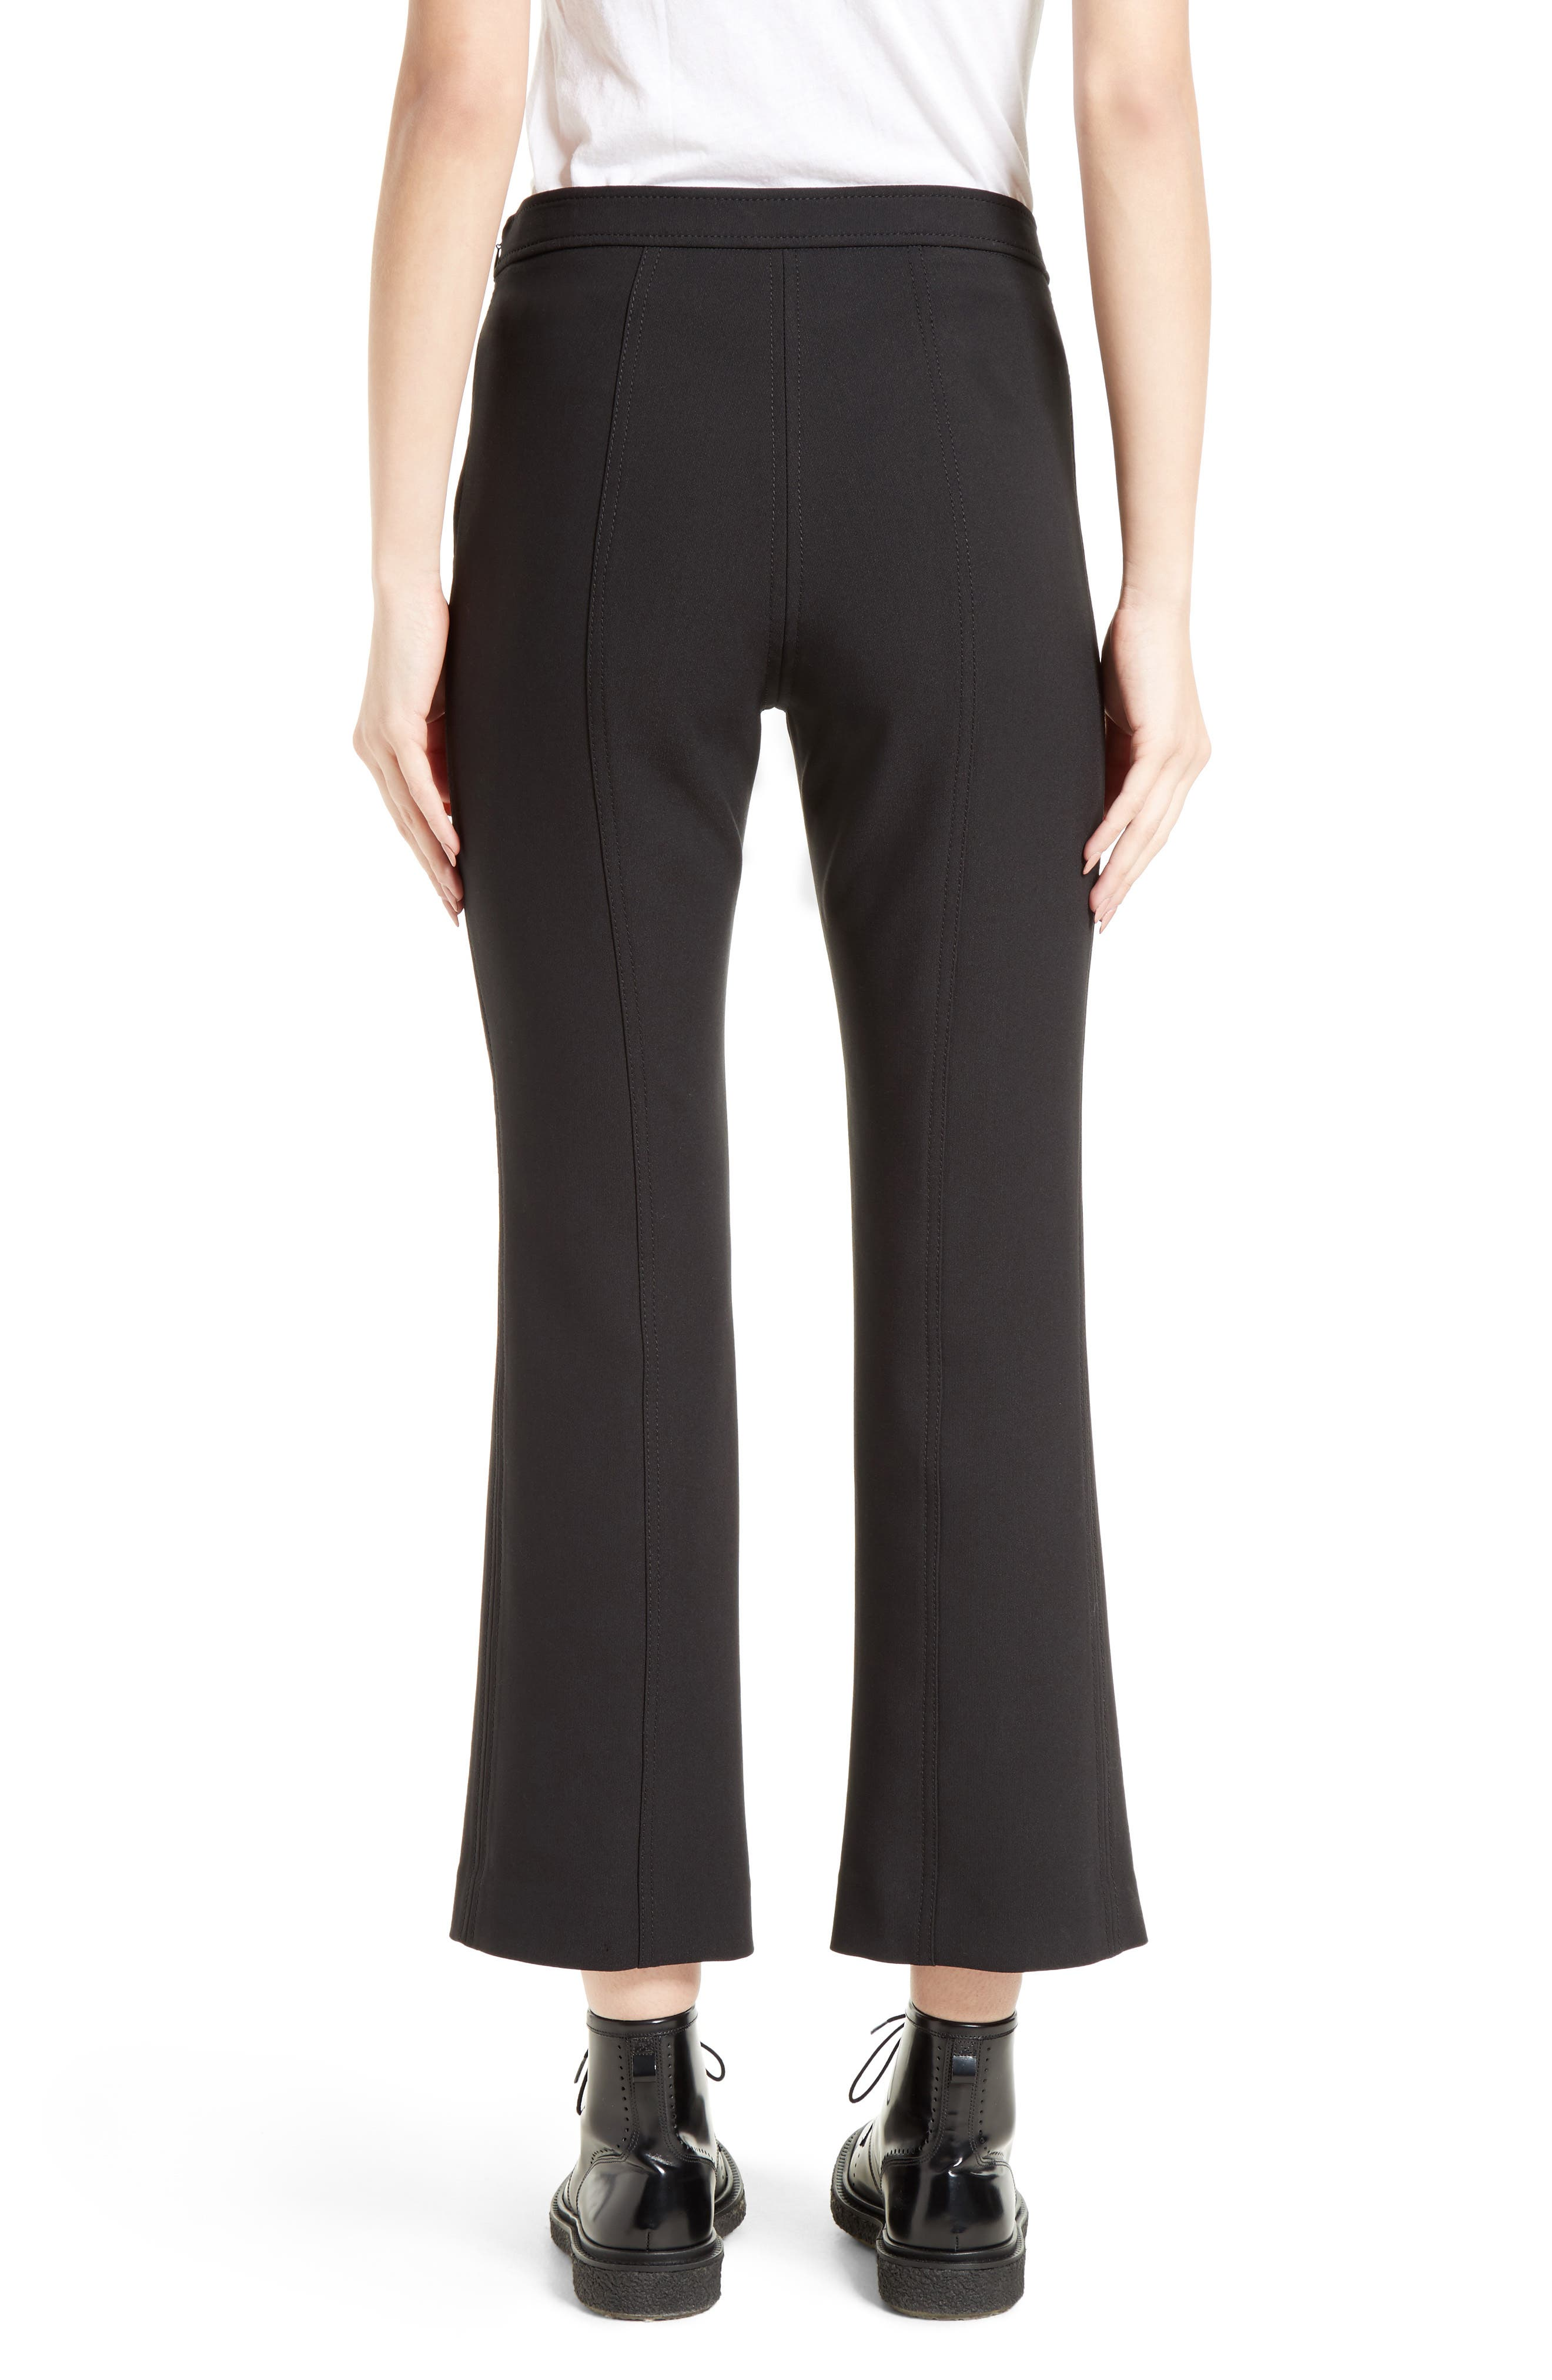 Tinsley Crop Flare Pants,                             Alternate thumbnail 2, color,                             001